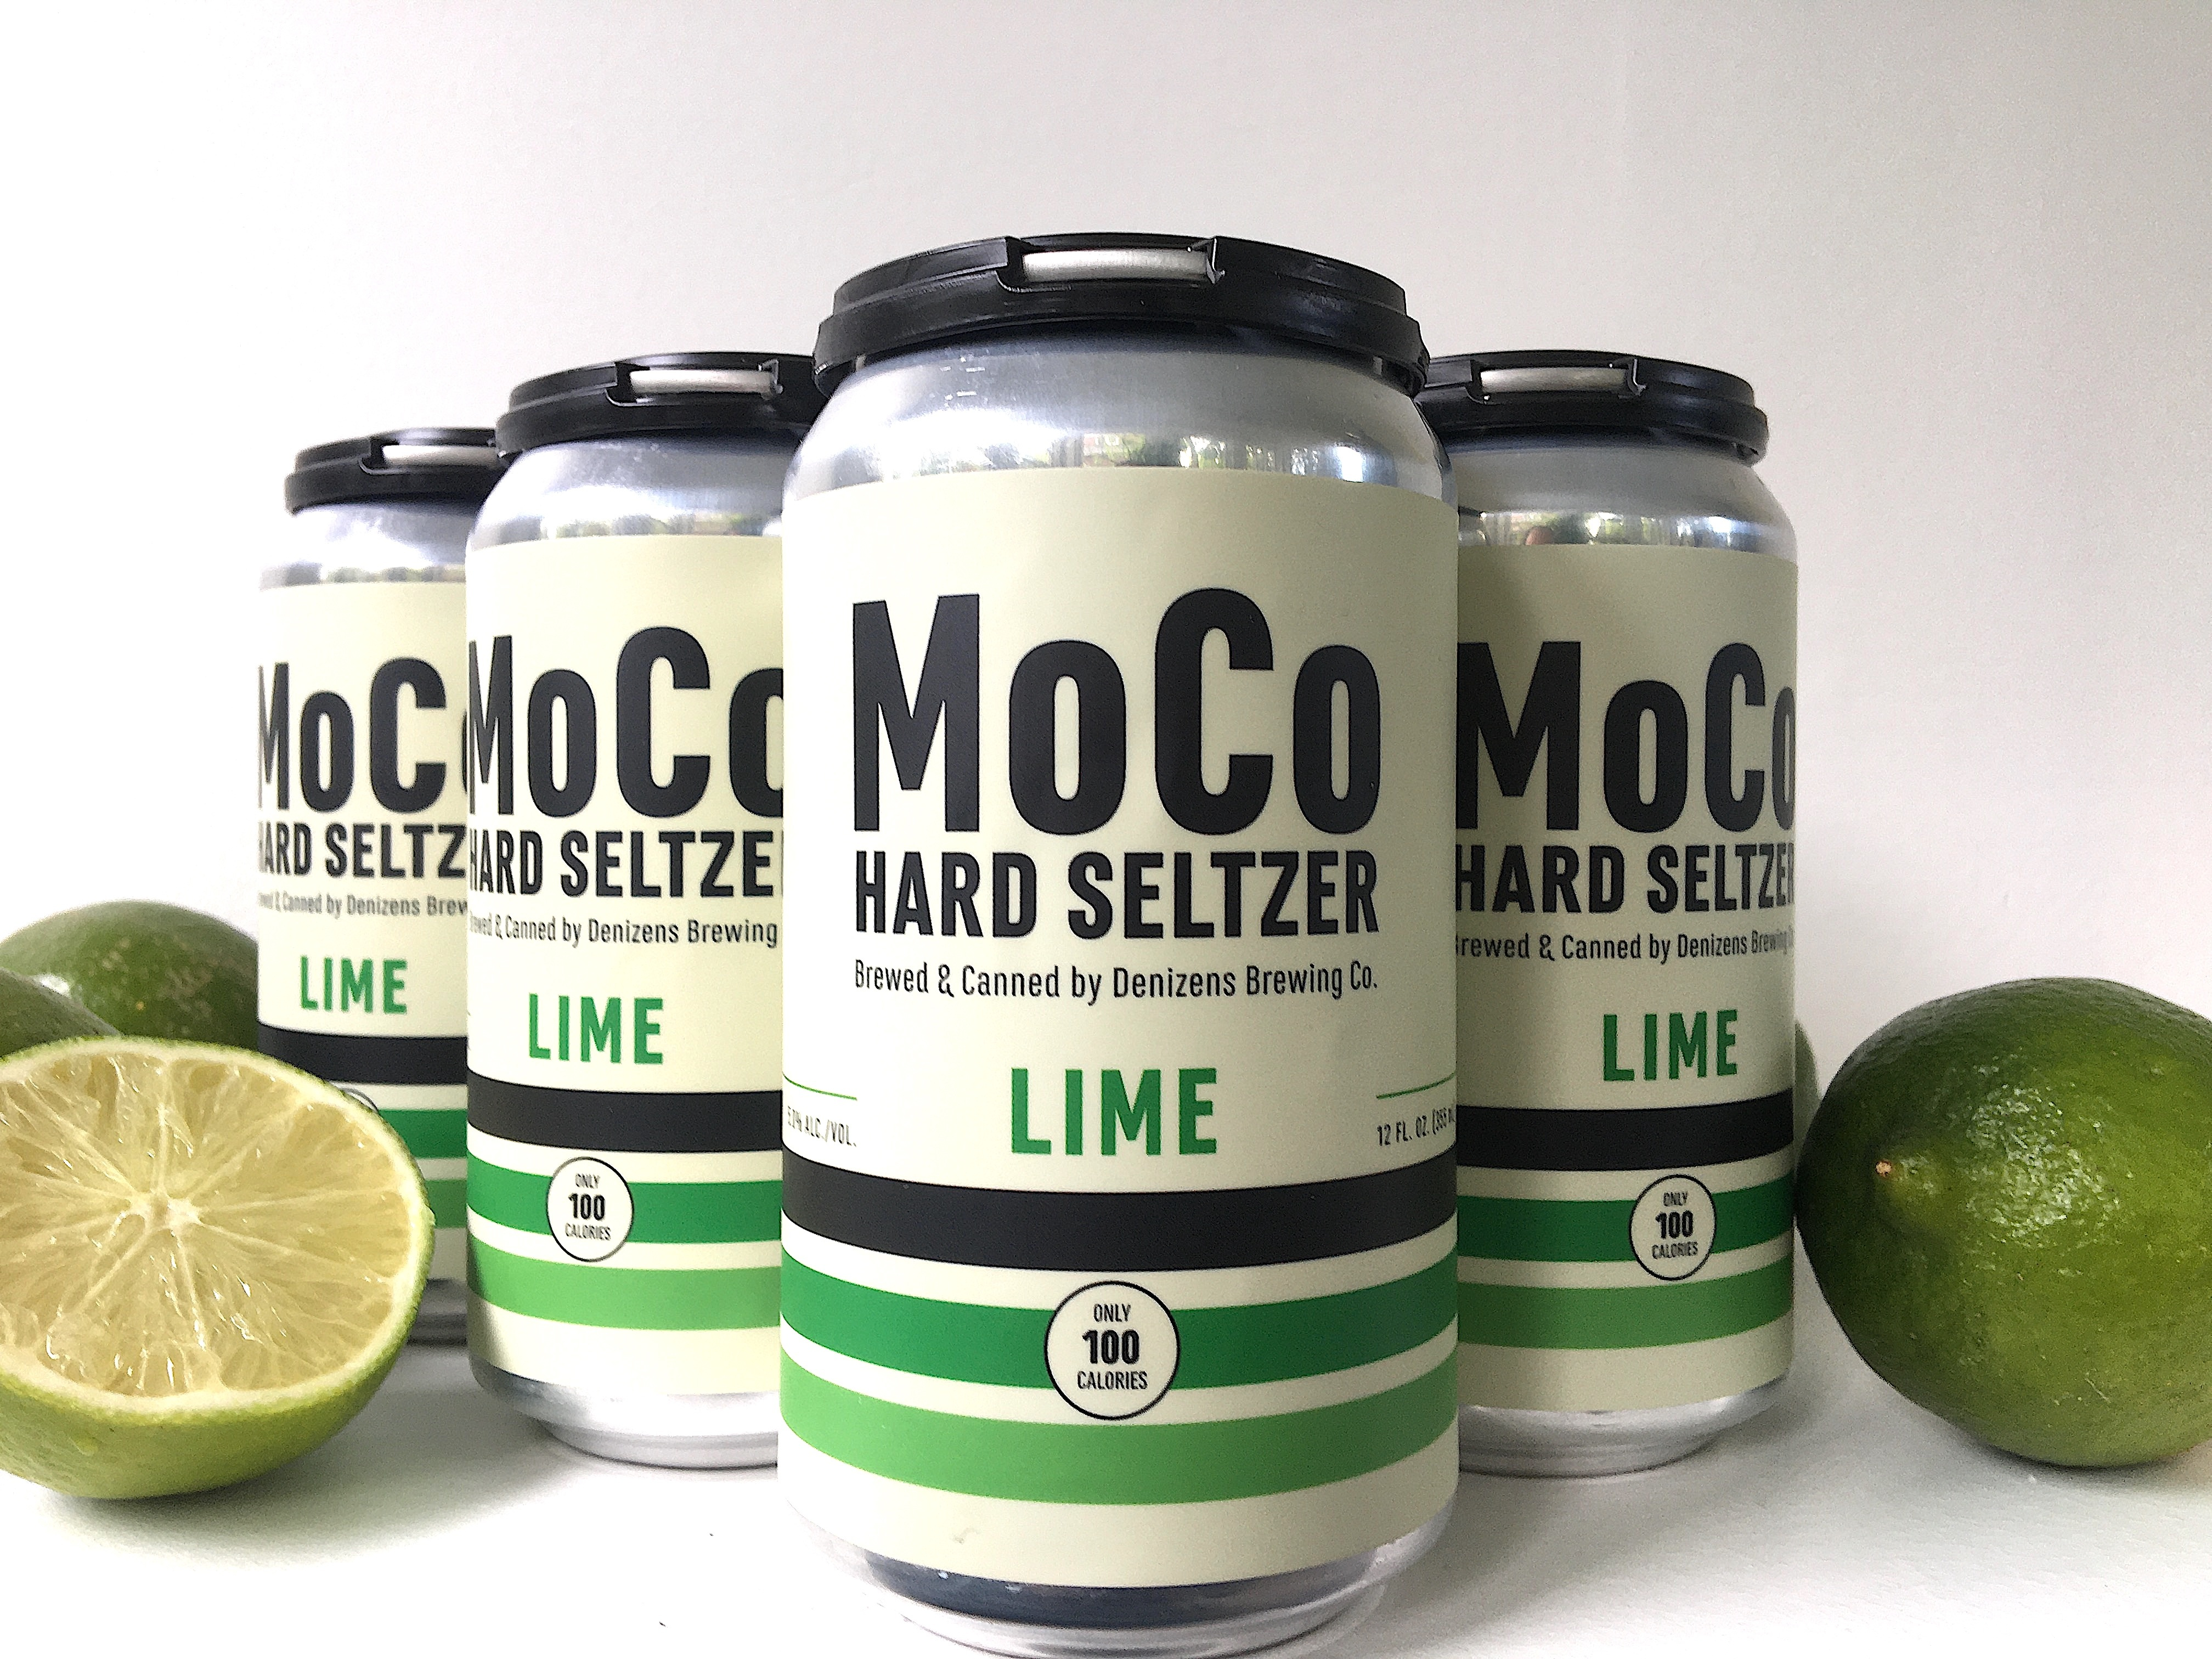 Denizens is selling its first hard seltzer